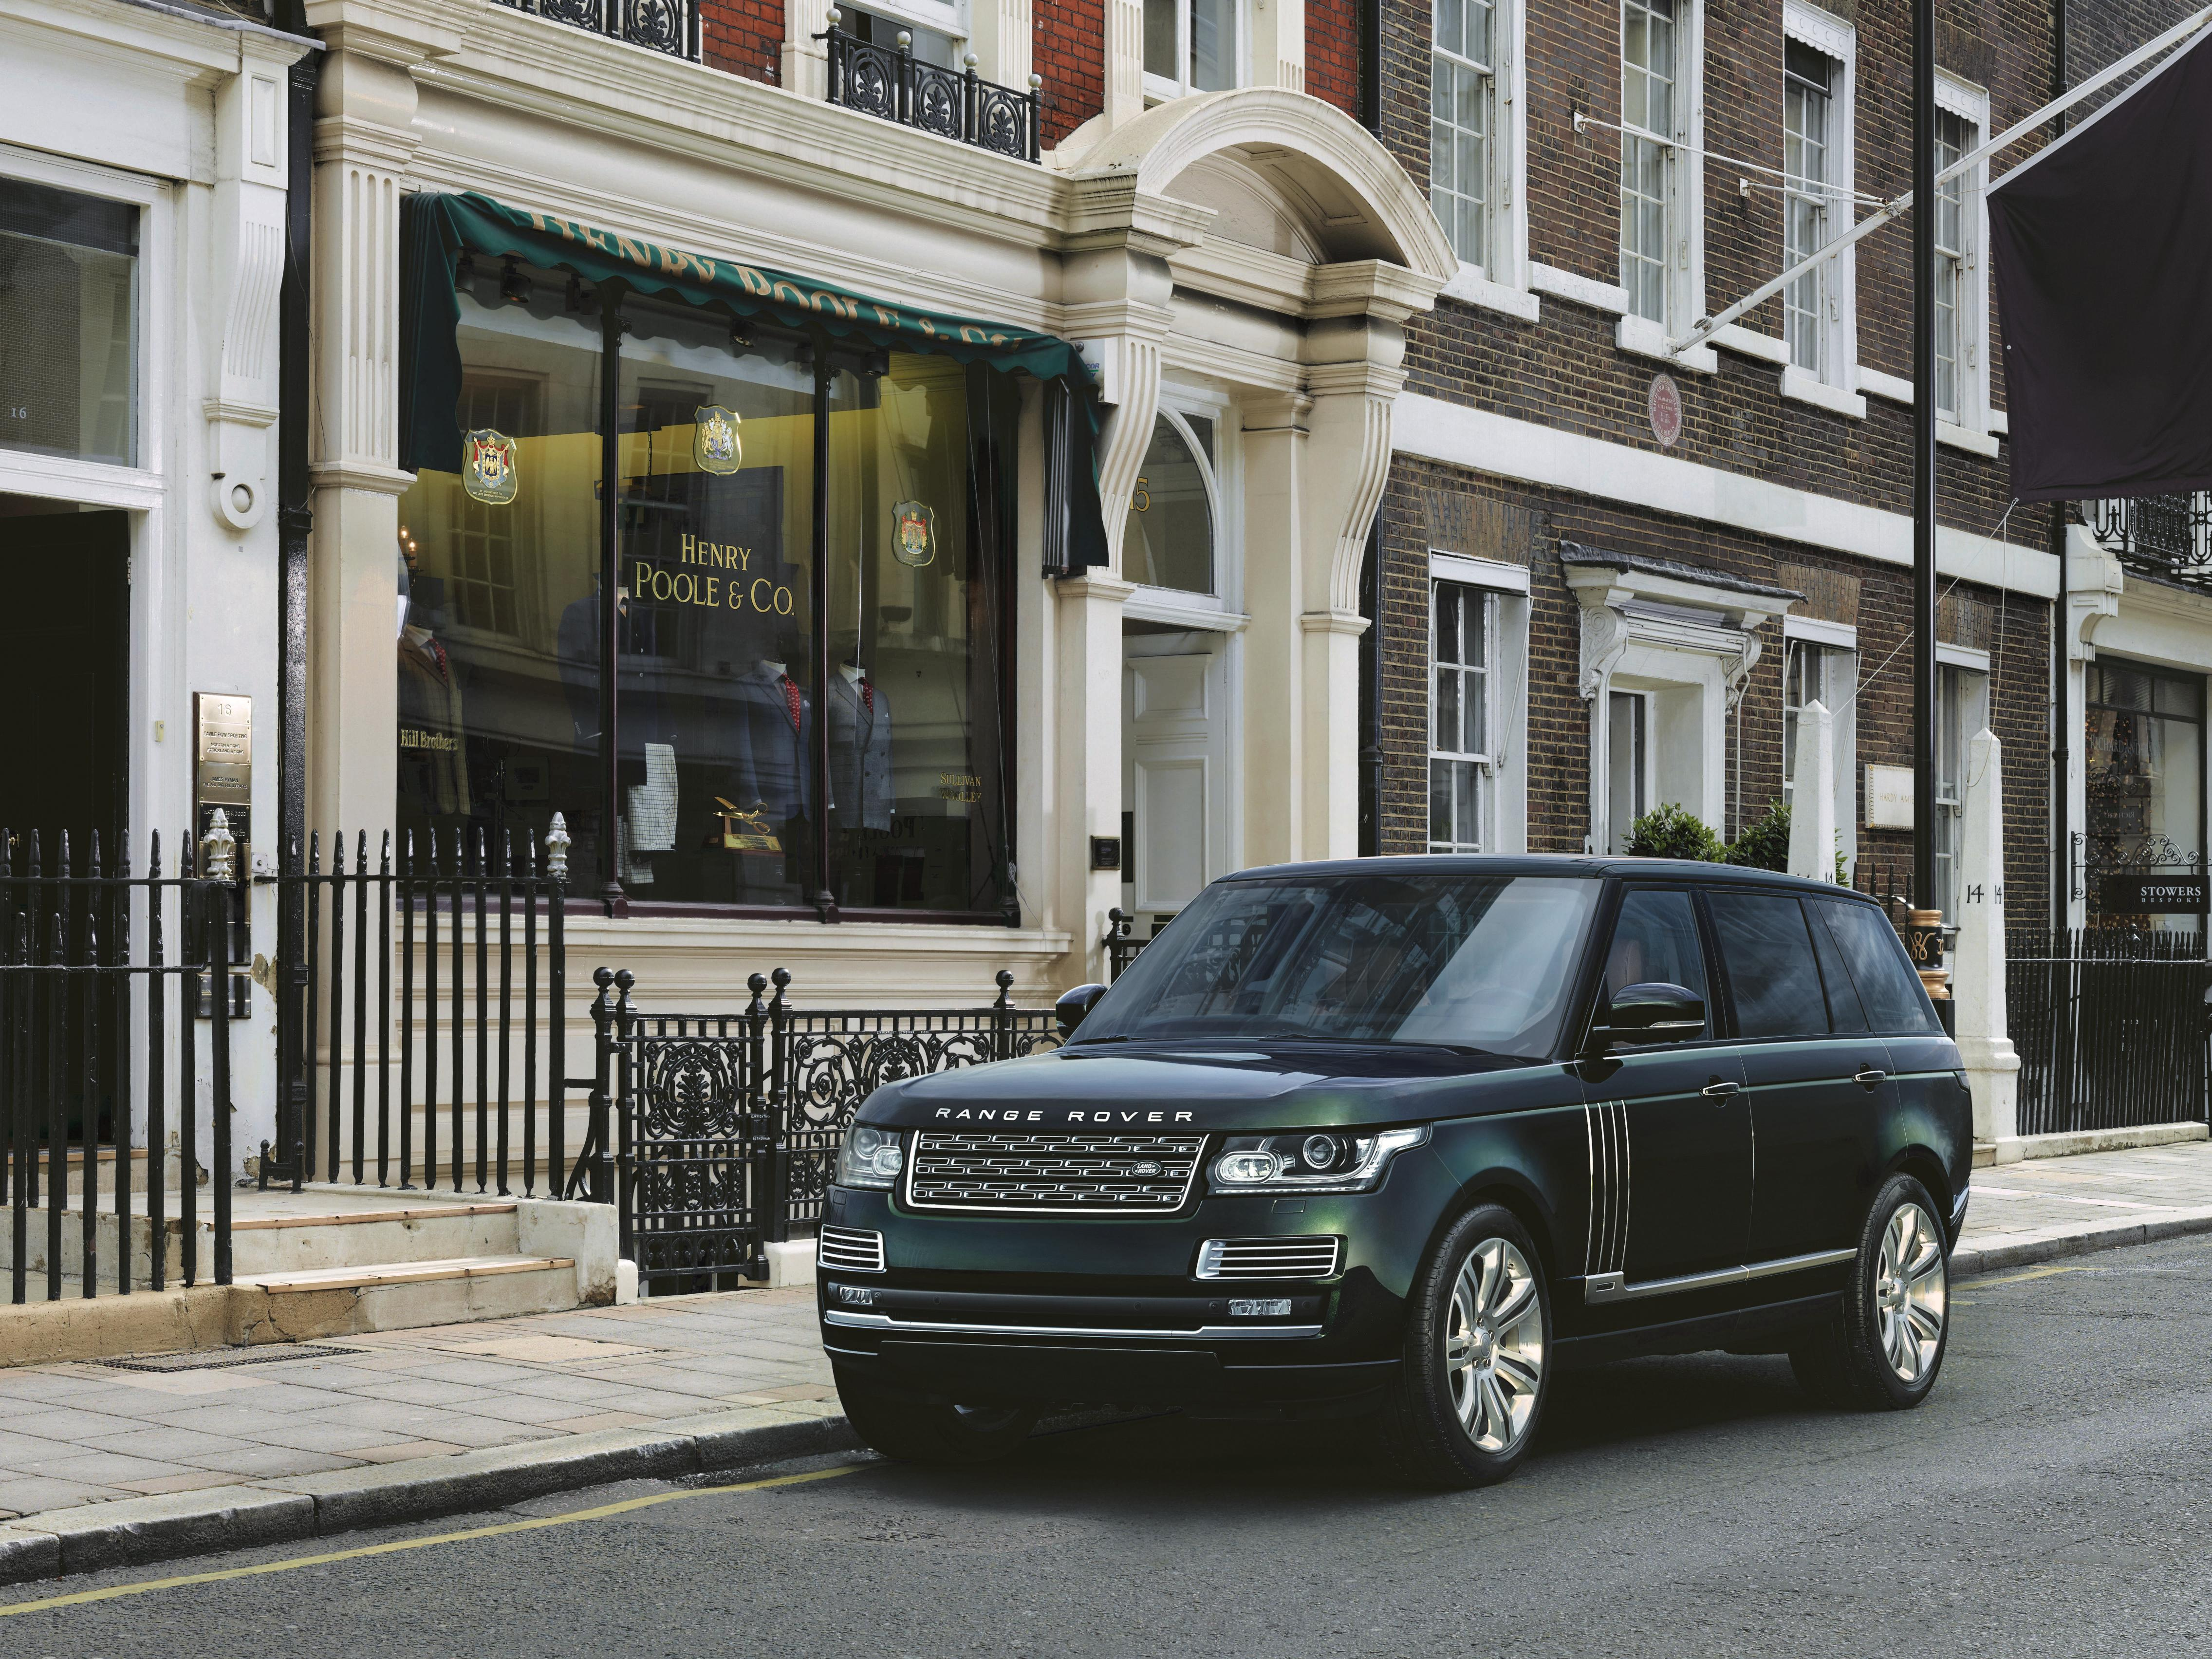 Range Rover Ultra-Luxury Model Will Purportedly Debut at the 2015 New York Auto Show - autoevolution